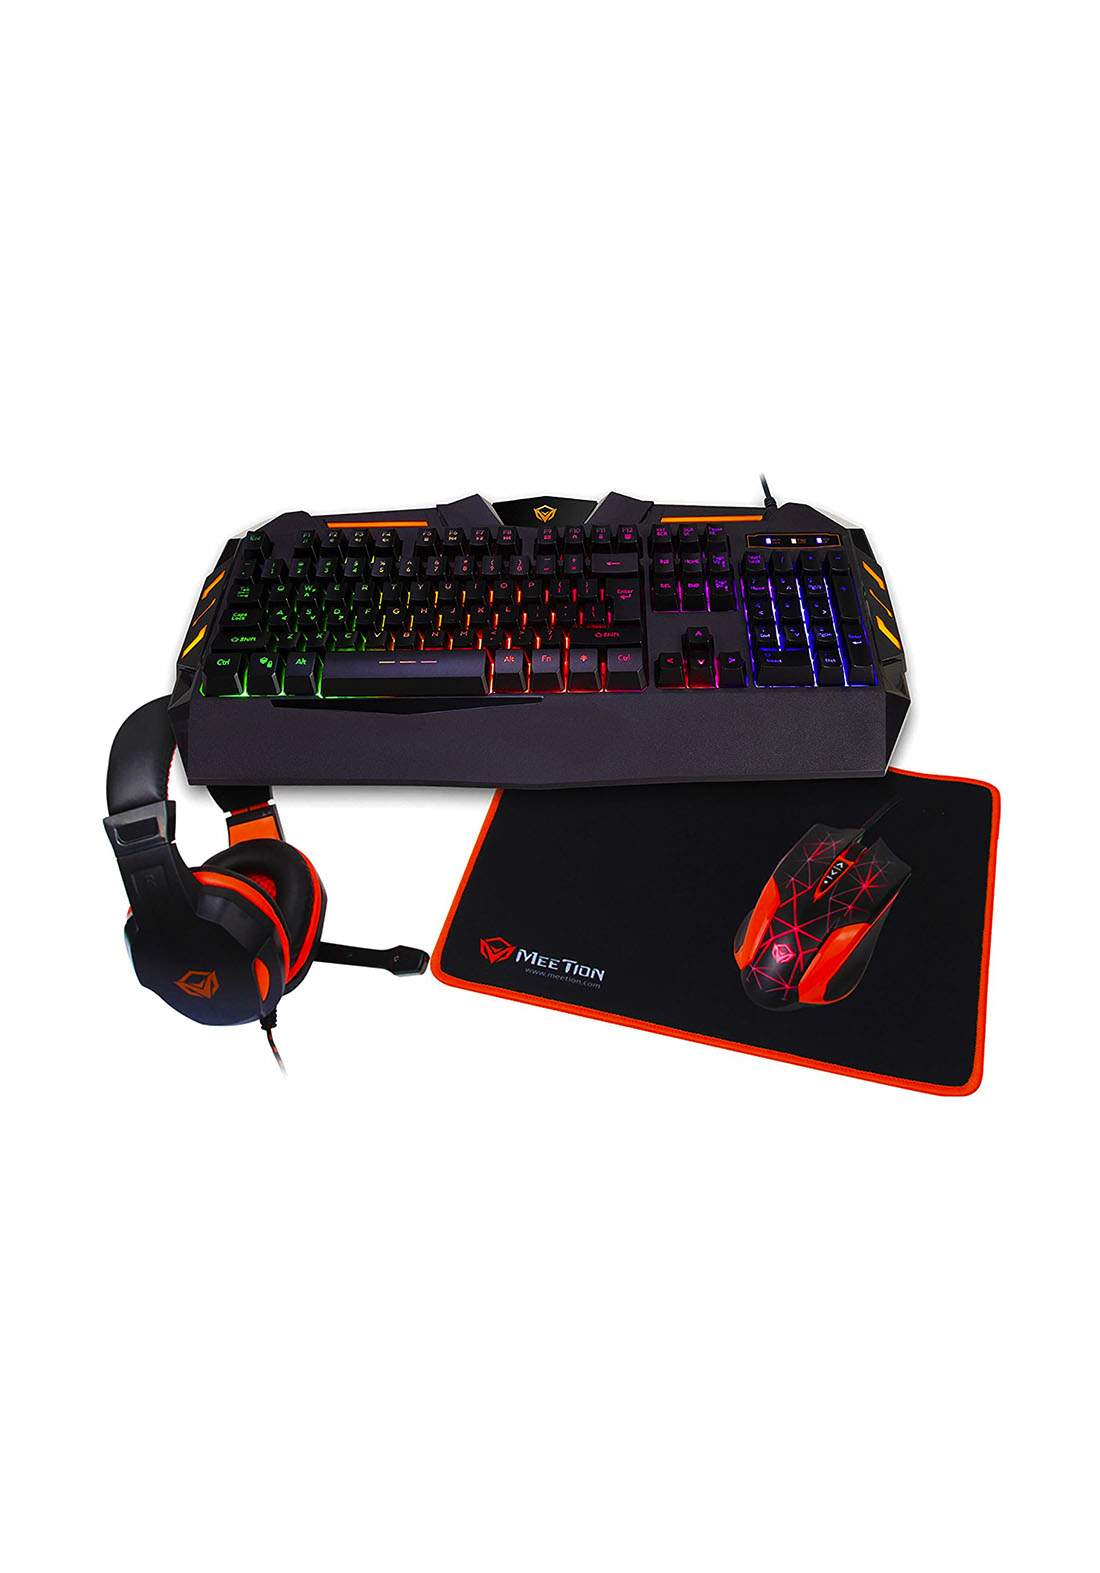 Meetion C500 4 In 1 Gaming Keyboard and Mouse pad with Gaming Headset